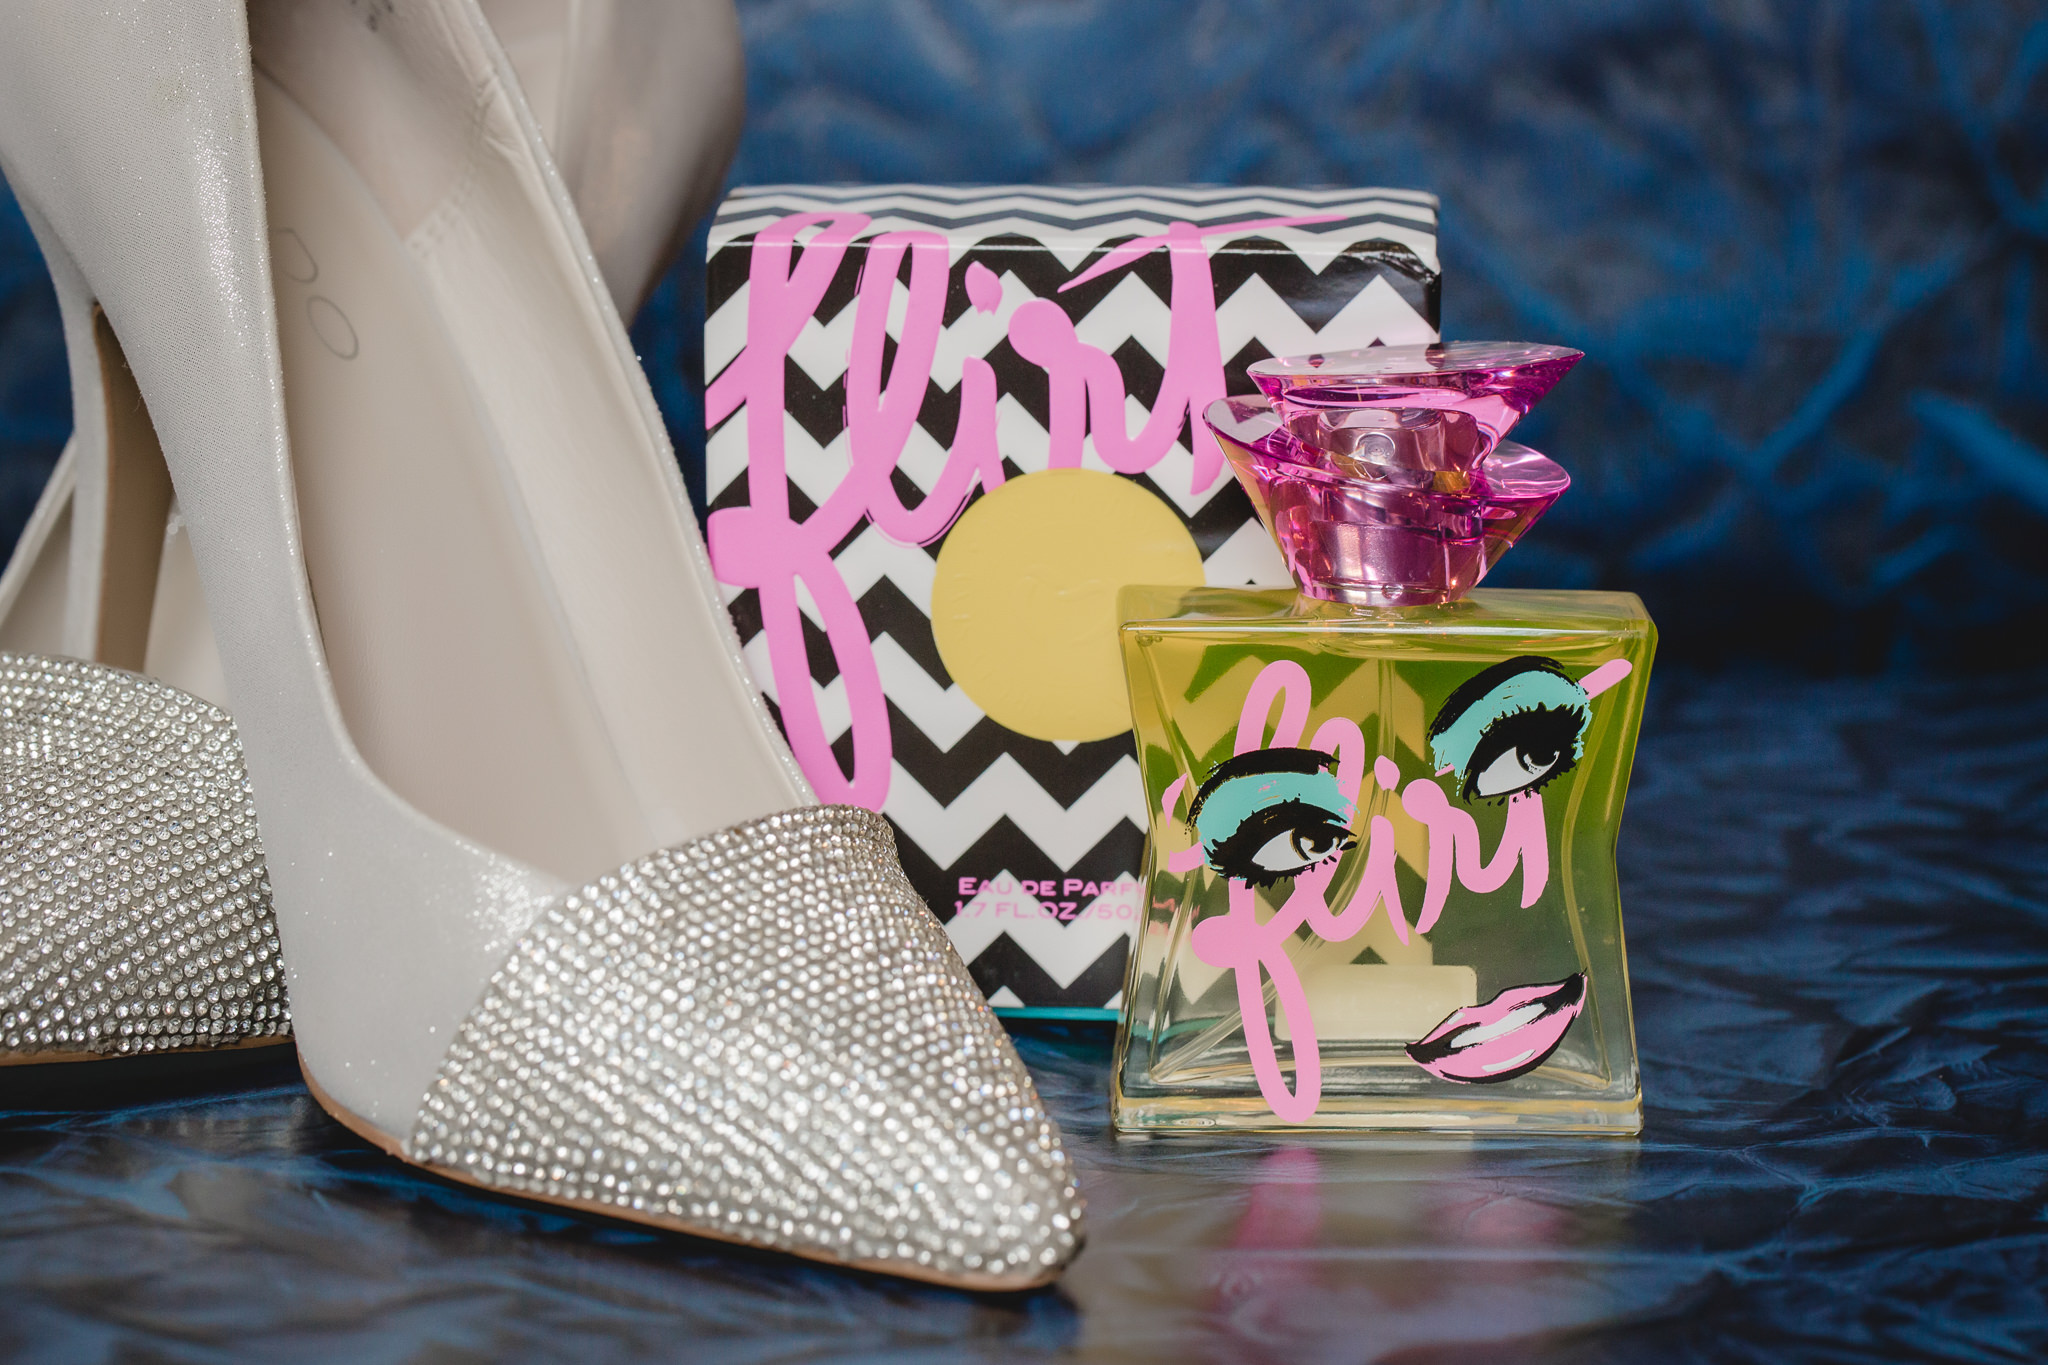 Bride's Aldo wedding shoes styled with her Flirt perfume bottle